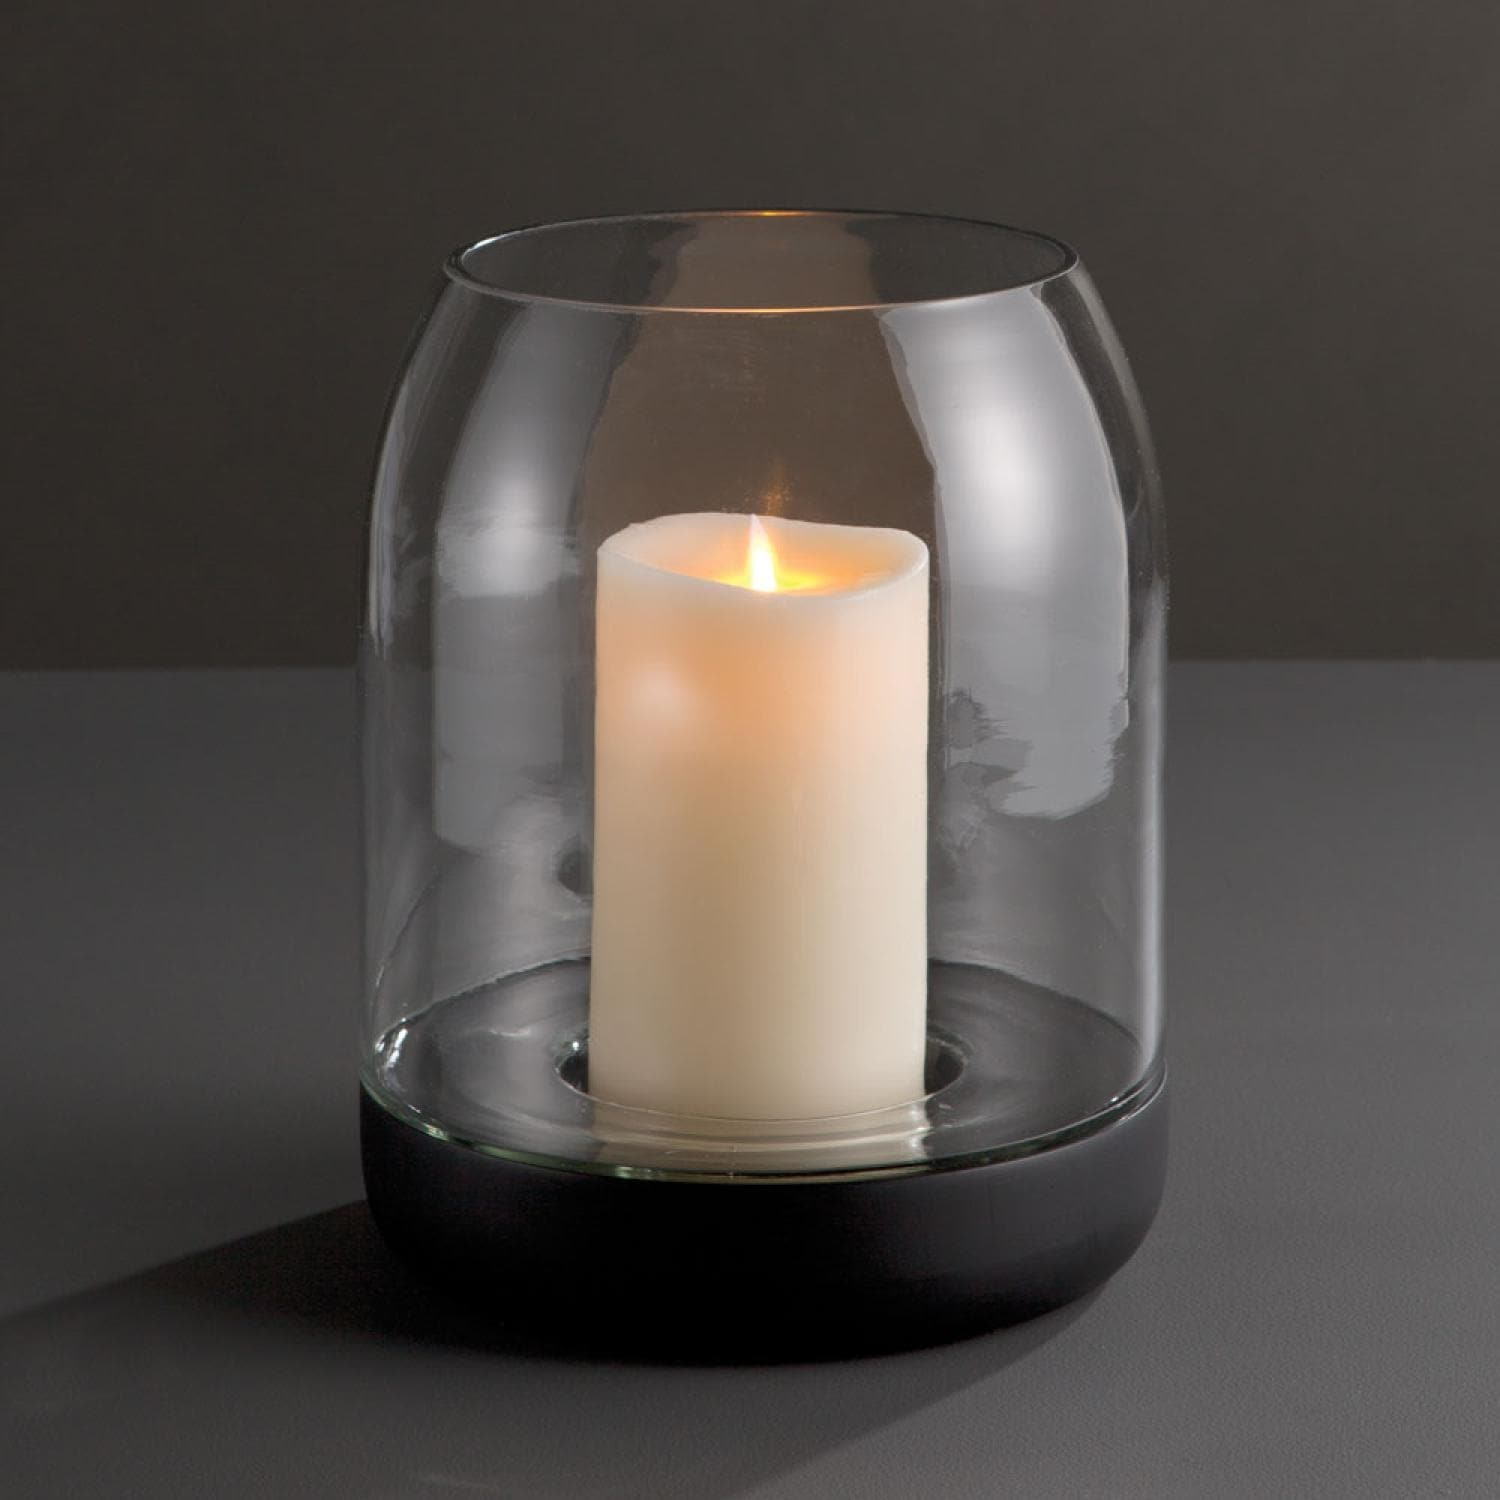 11 25 Matte Black And Clear Mango Wood Hurricane Pillar Candle Holder Overstock 16688241